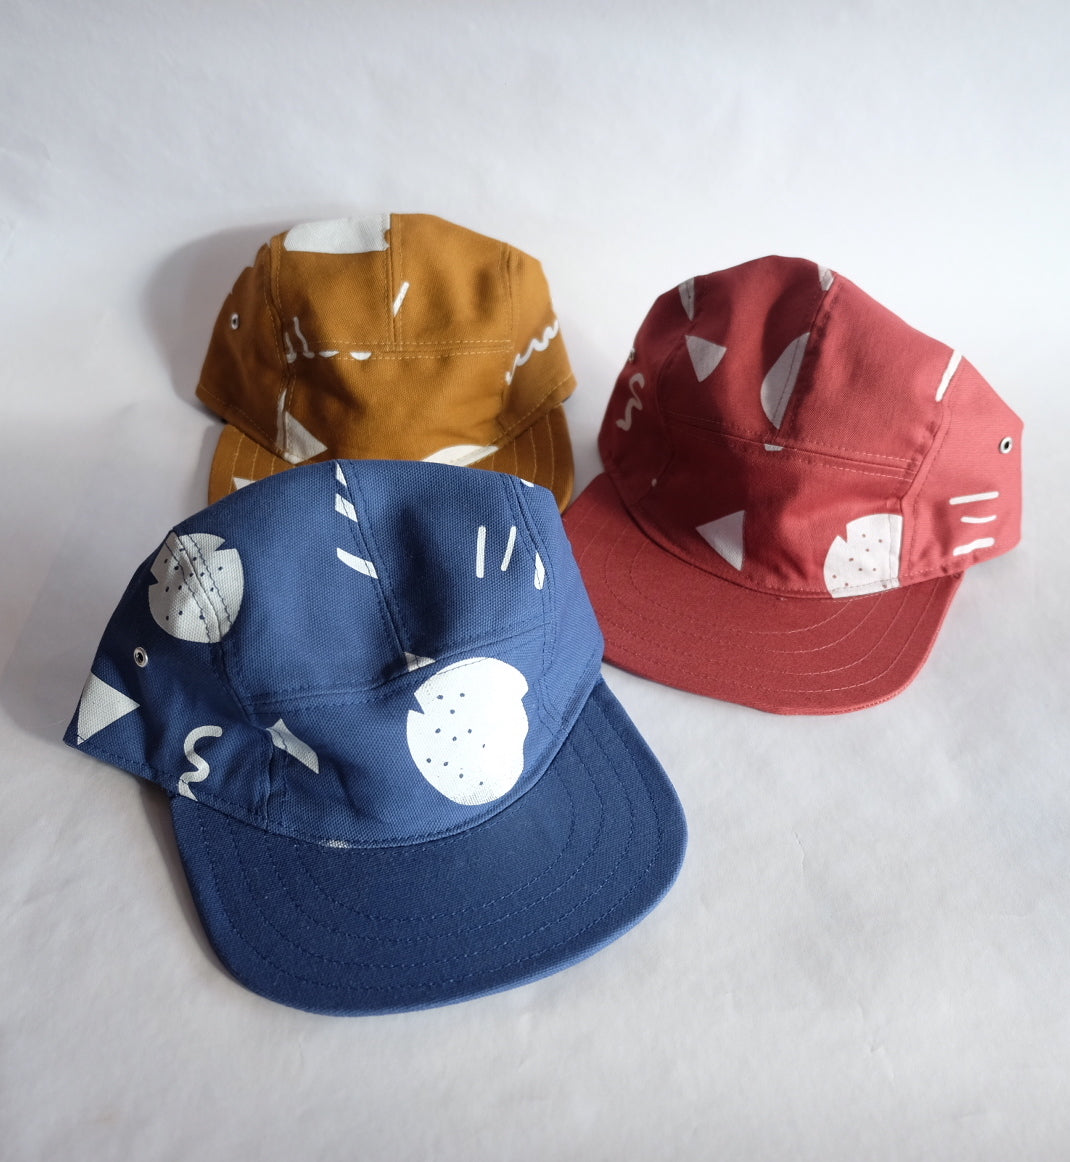 Pulp Co. / Adult Cap